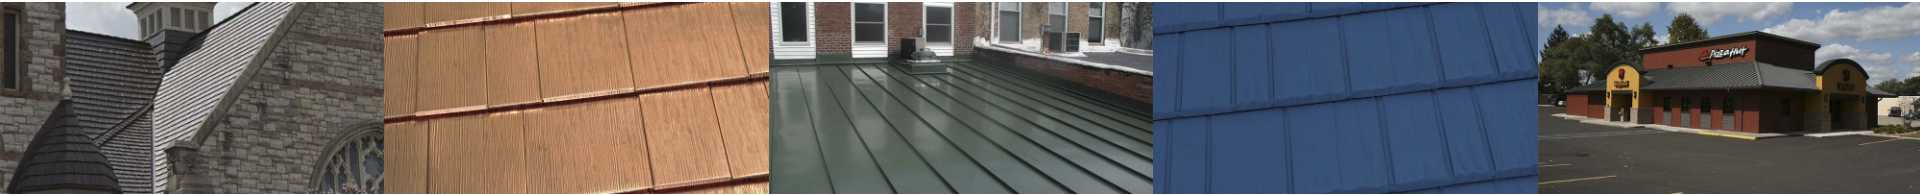 metal roofing in michigan product shots on church roofs and commercial property roofs